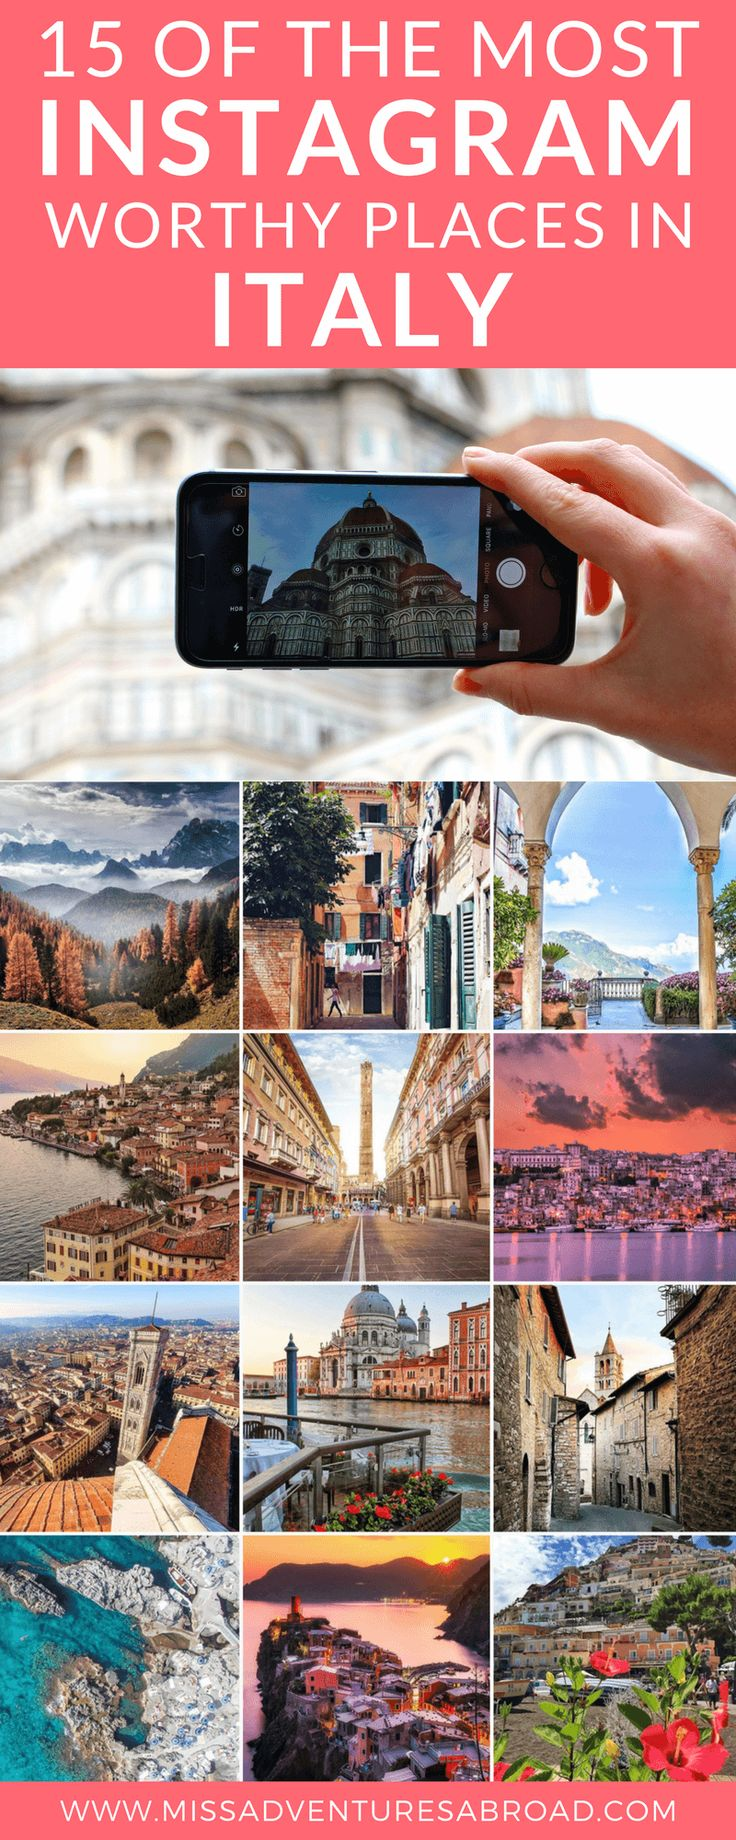 The 15 Most Instagram Worthy Places To Visit In Italy · From historic Rome and the Tuscan countryside to the beaches of Cinque Terre, discover the 15 best photo spots to travel to in all of Italy! These locations are simply stunning, and you are bound to find some pretty amazing places to feature on your Instagram account!